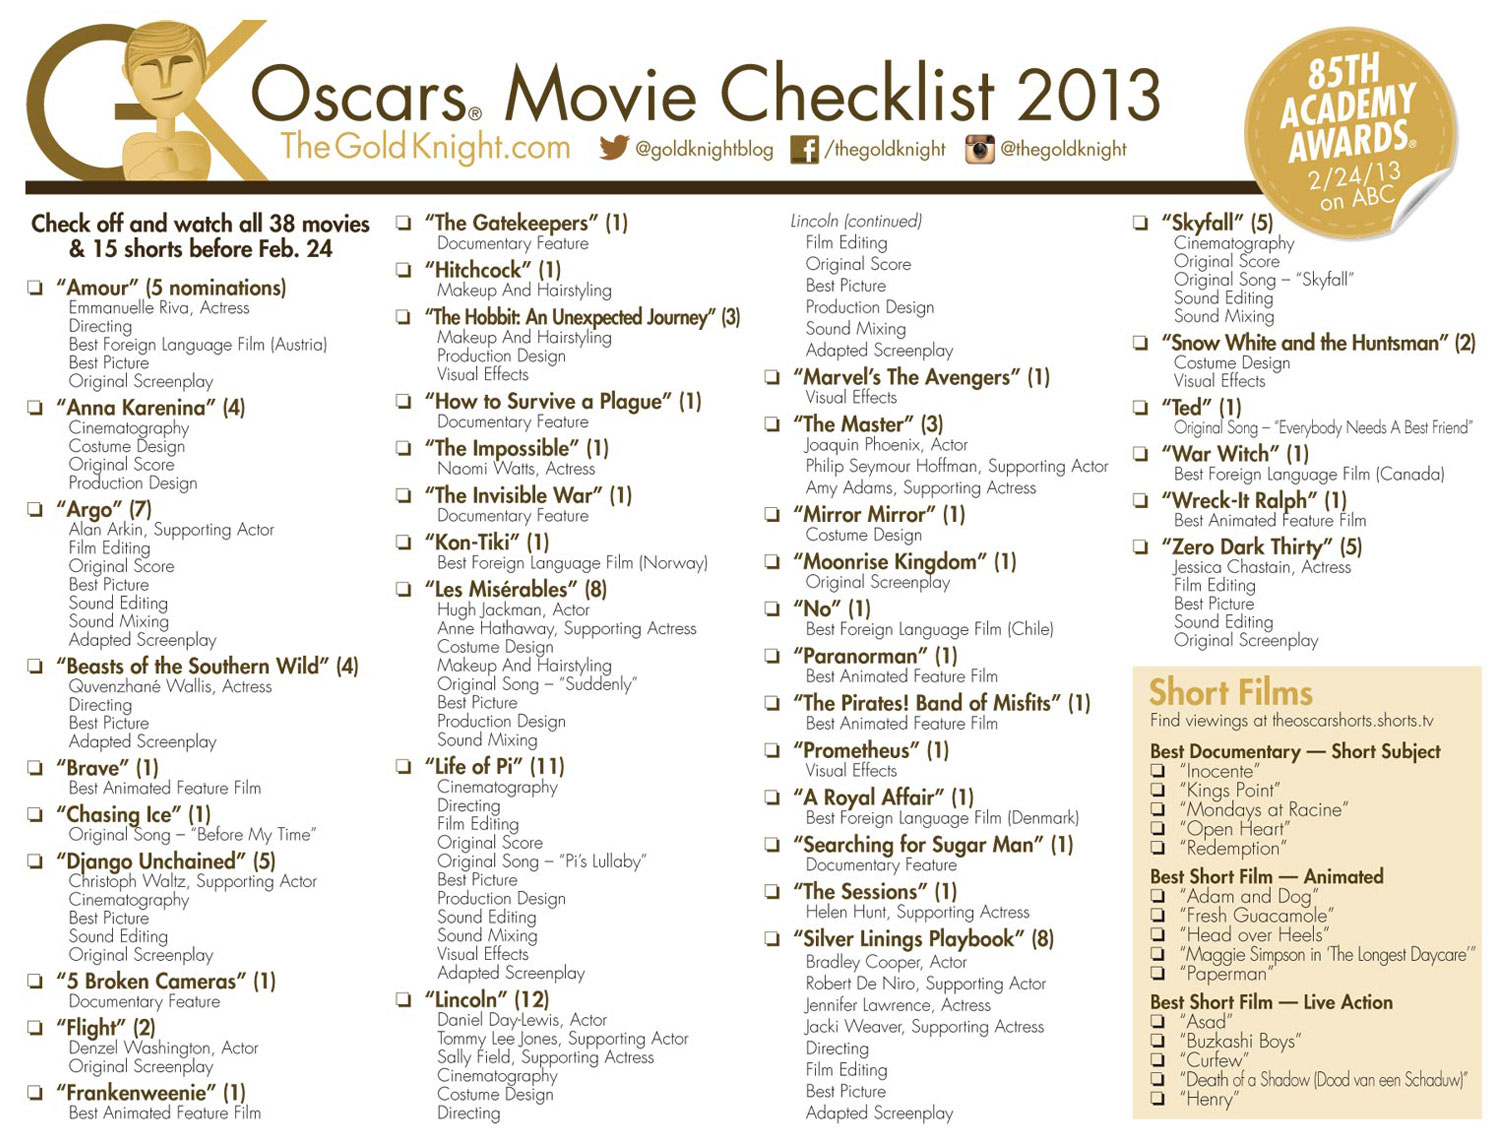 Golden Globes Nominations 2013 Printable List on golden globes nominations printable